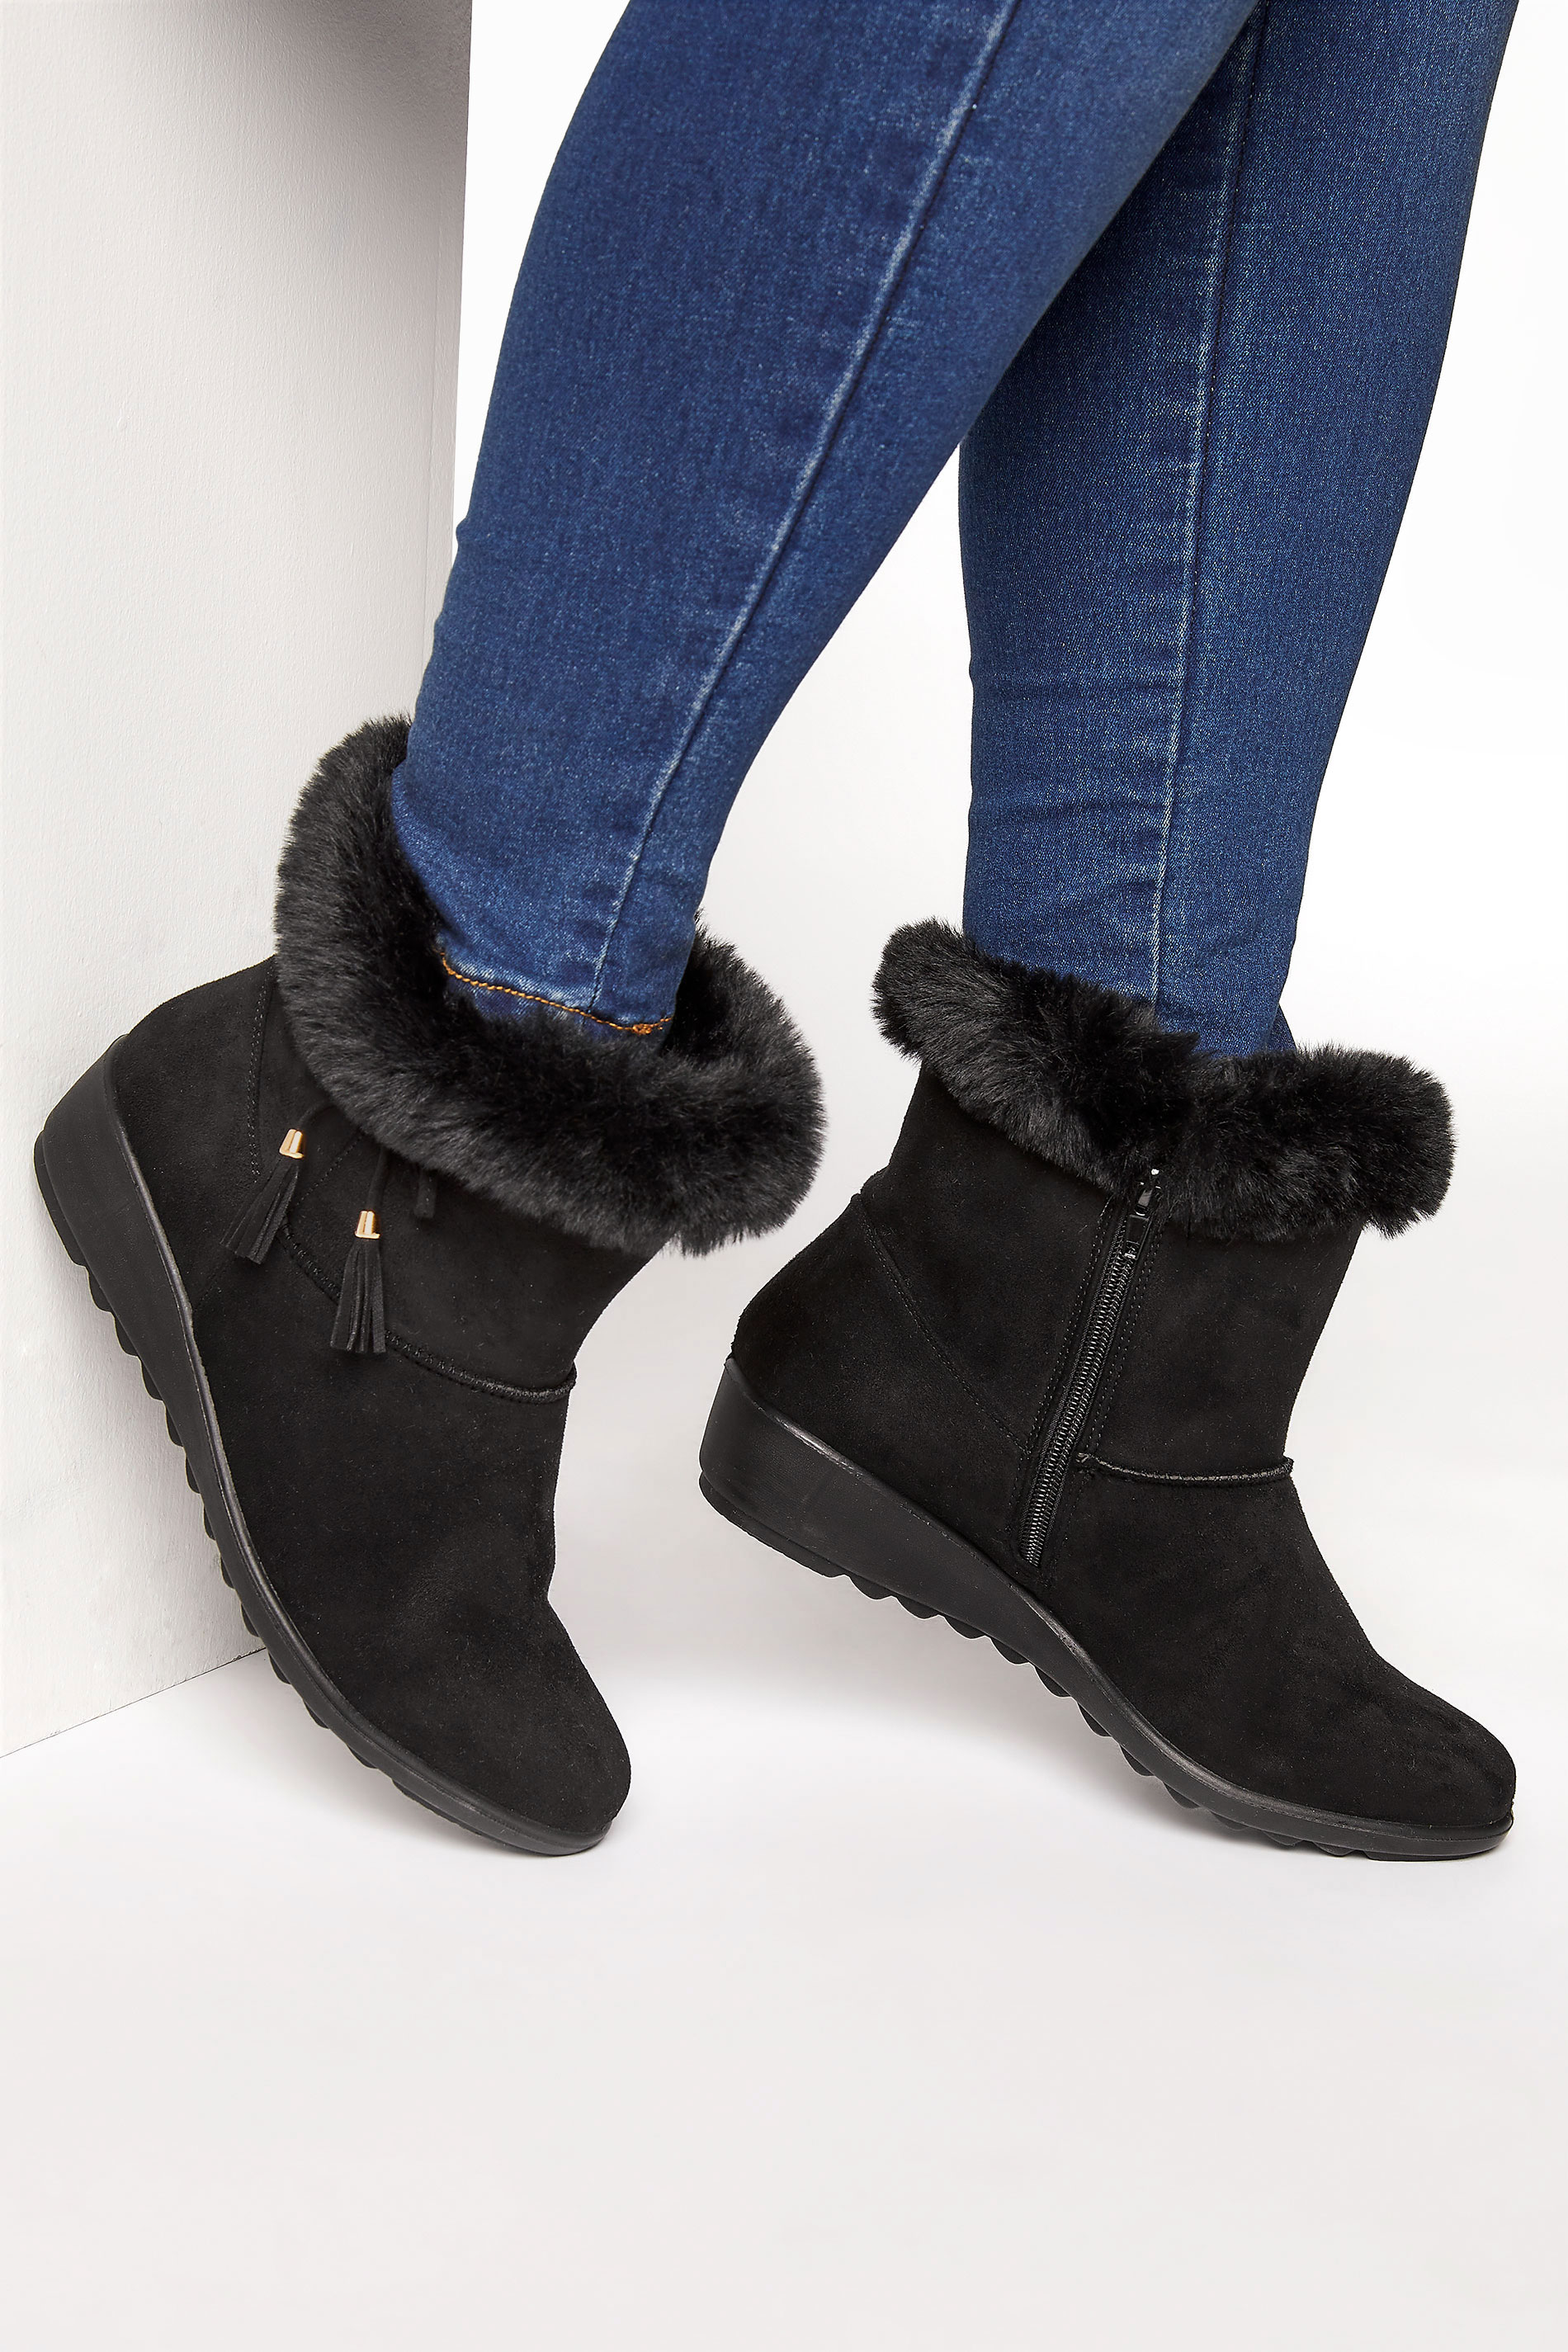 Black Bow Trim Wedge Boots in Extra Wide Fit_M.jpg